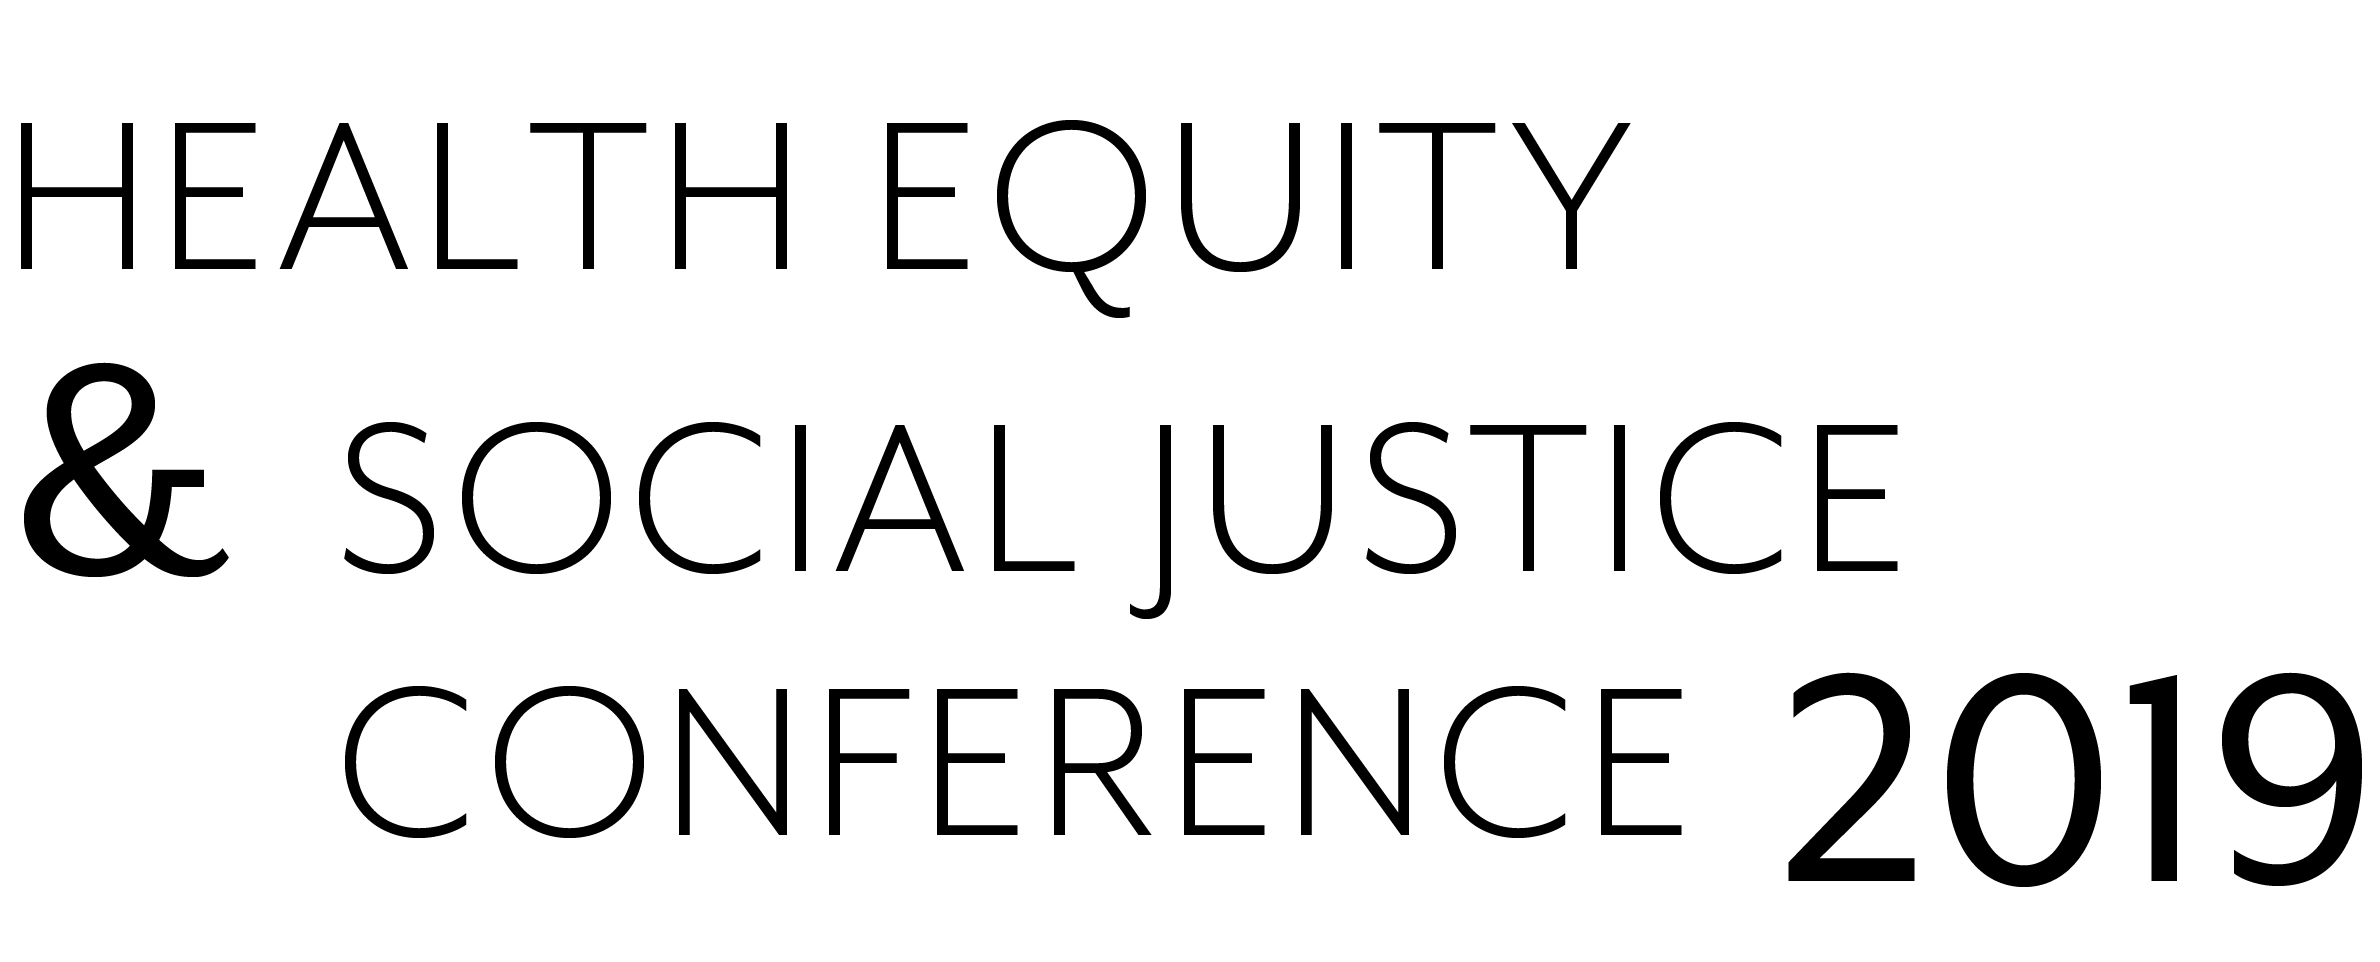 12th annual Health Equity & Social Justice (HESJ) Conference logo